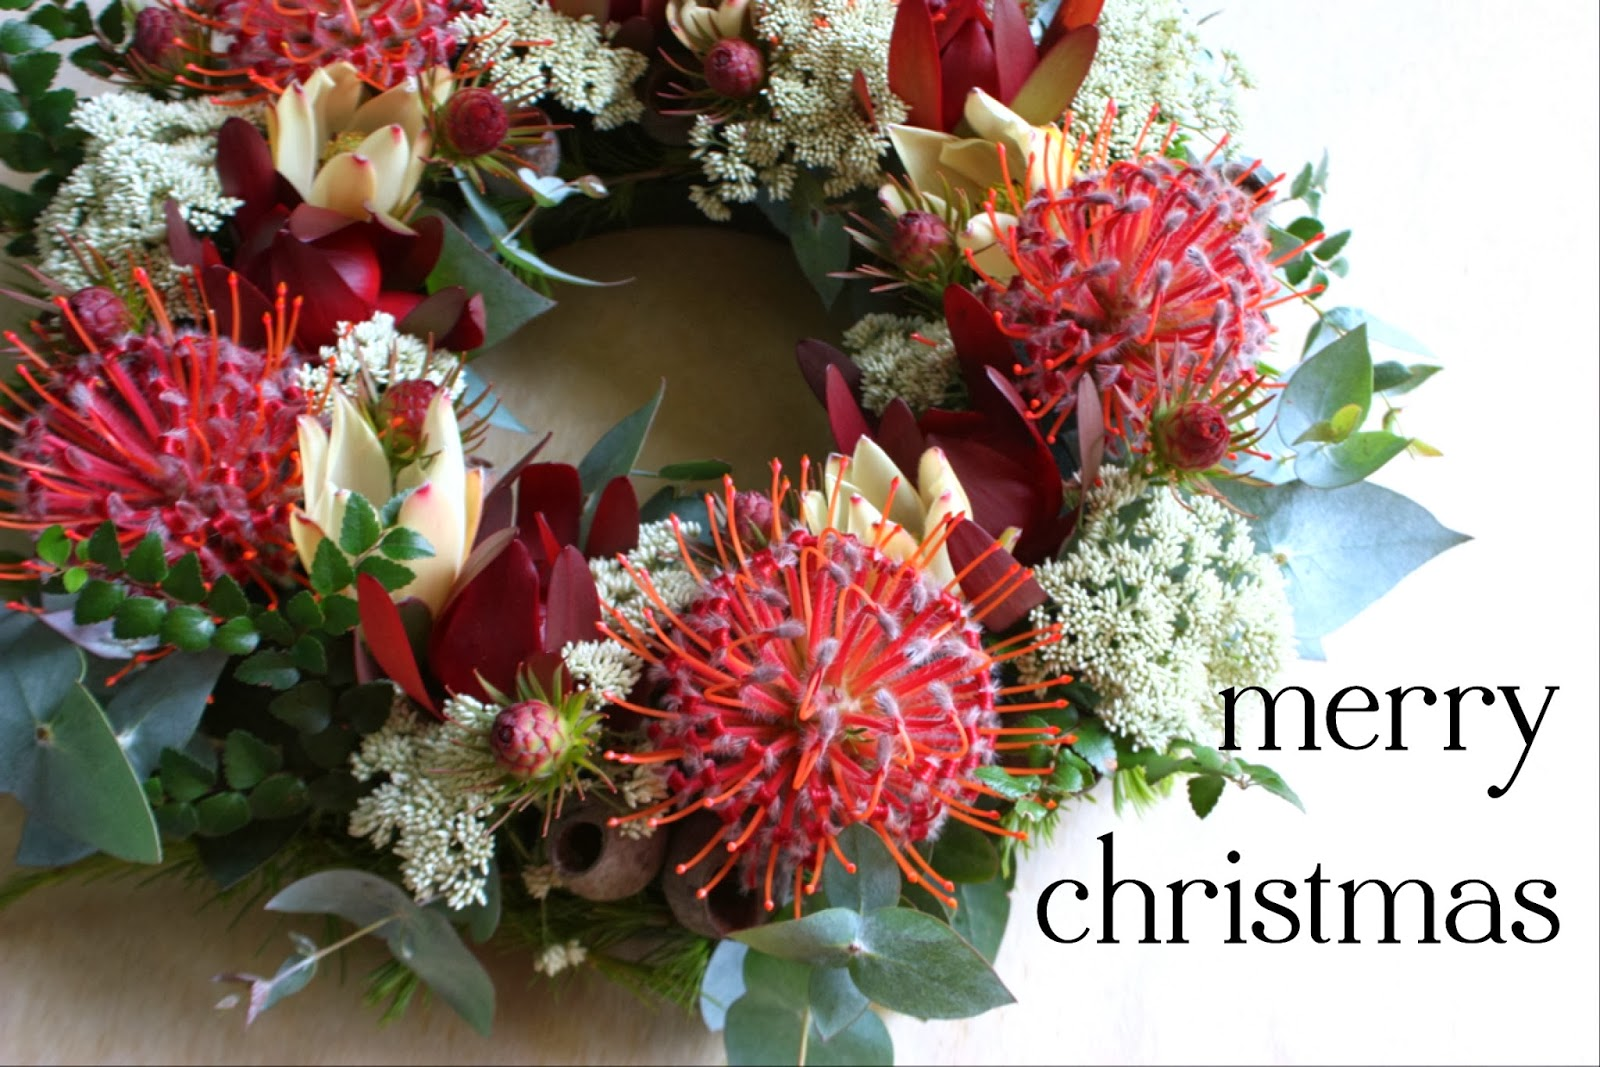 Swallows Nest Farm: Merry Christmas and Happy New Year